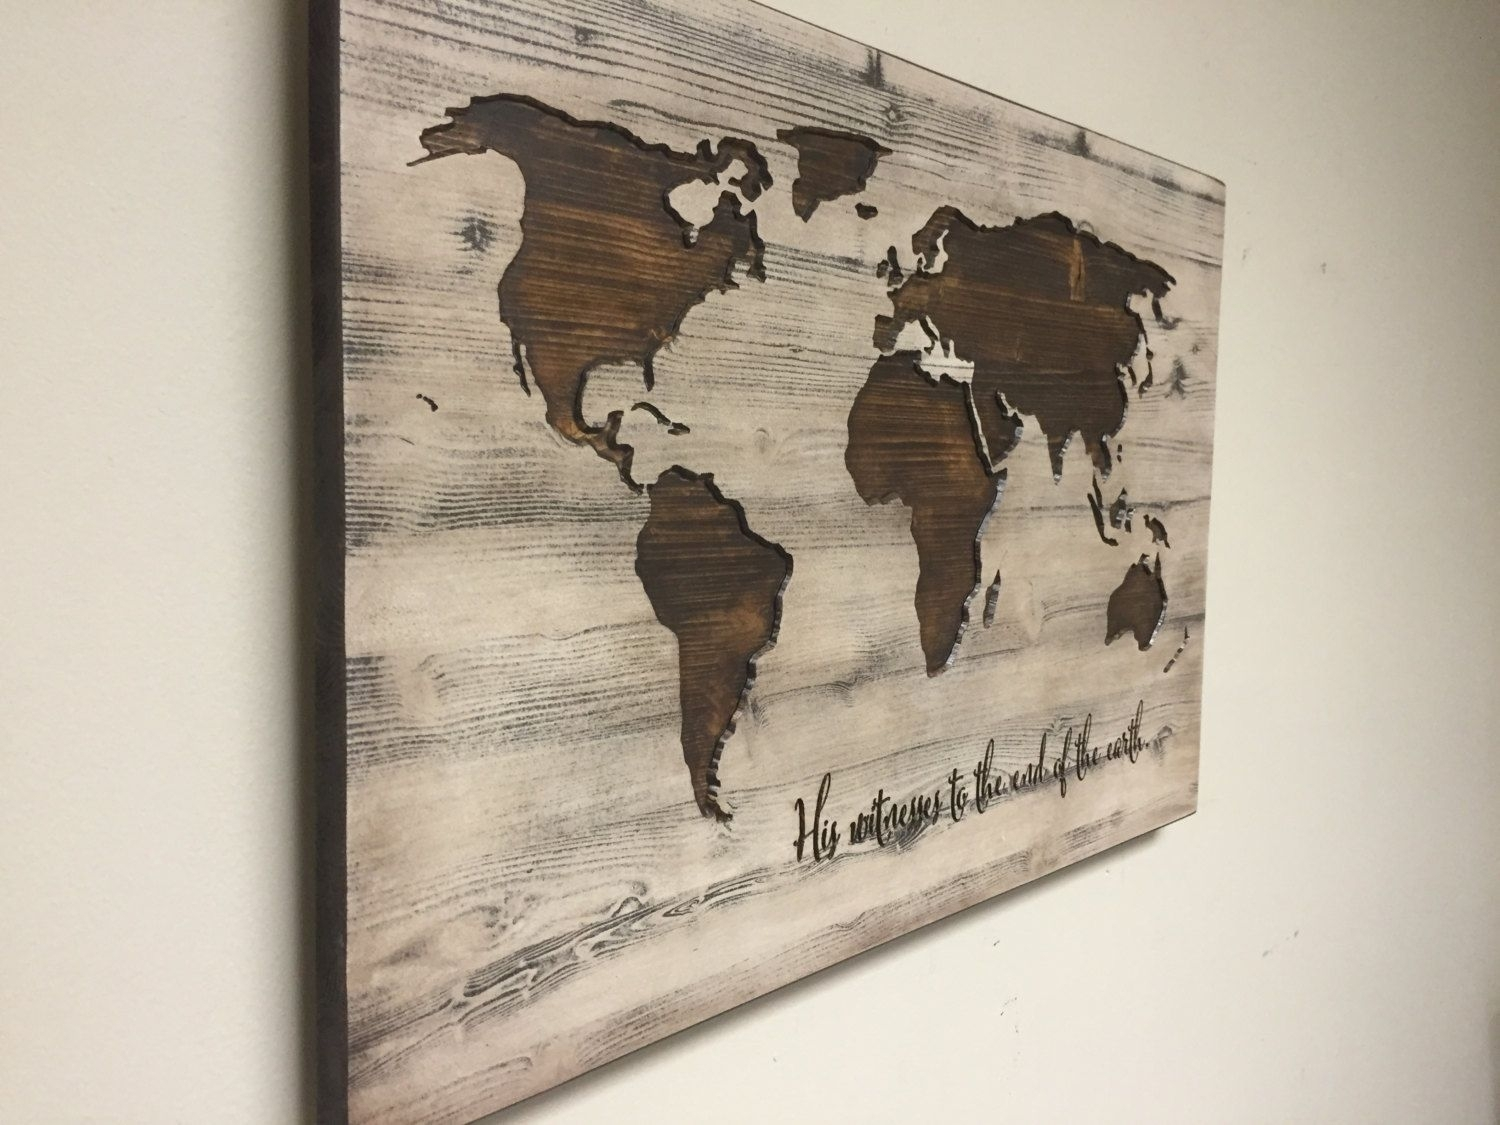 World Map Wall Art, Spiritual, Vintage Carved Wood Map, His Witness Throughout Best And Newest Wall Art World Map (View 15 of 20)